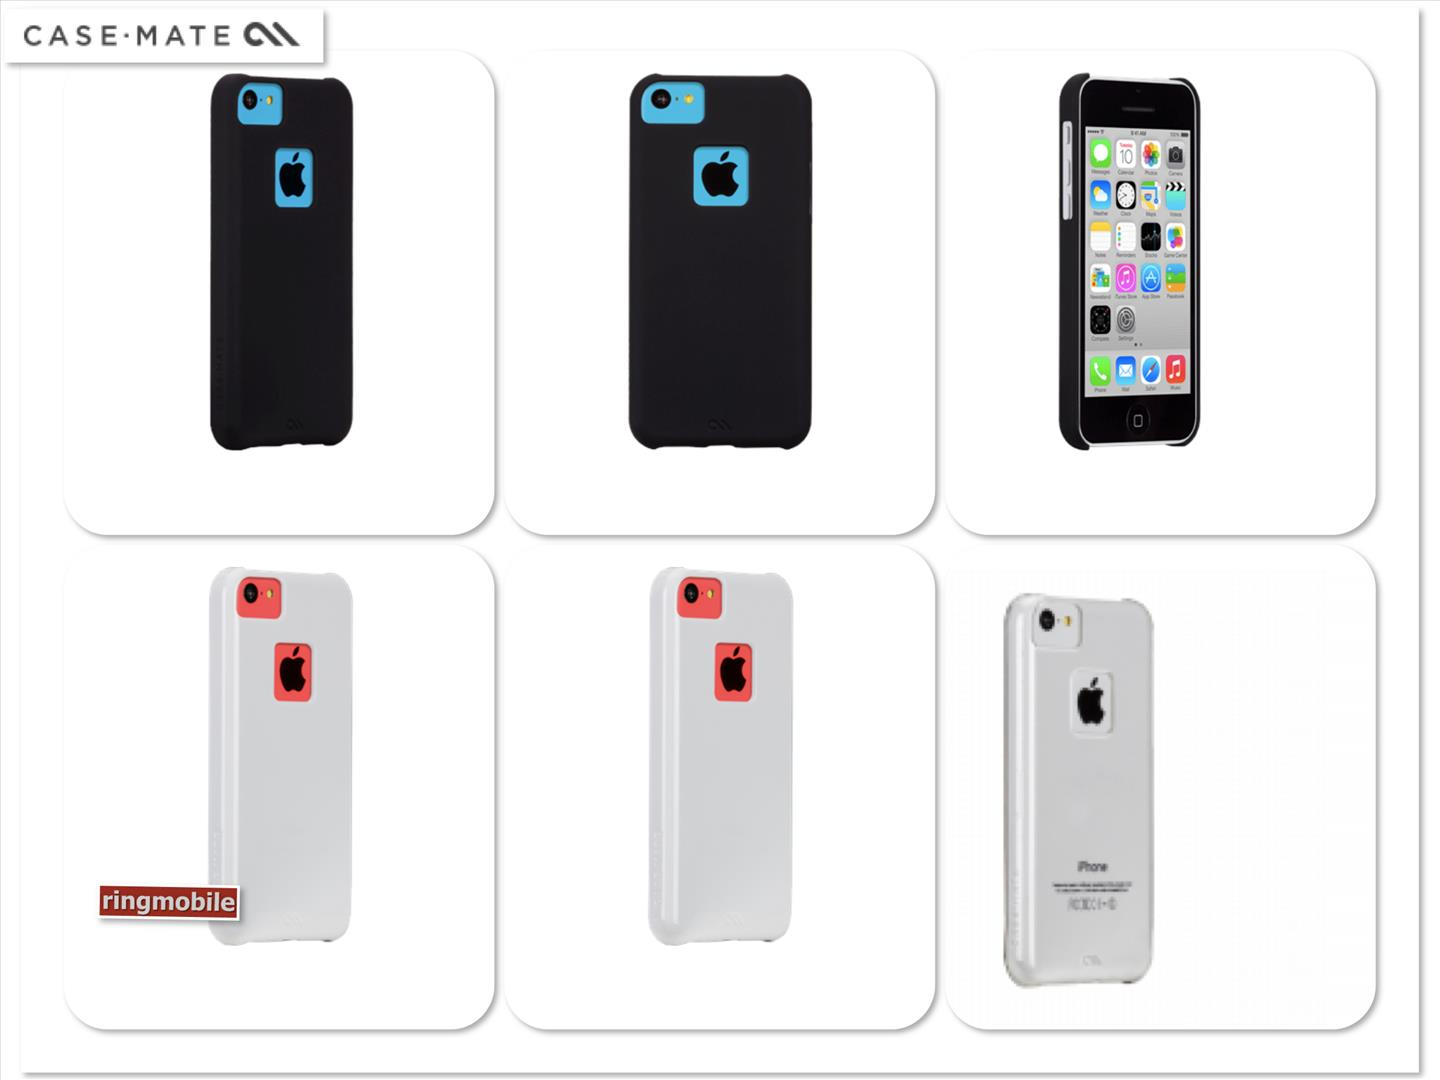 bdotcom = iphone 5c case mate Barely There slim case =